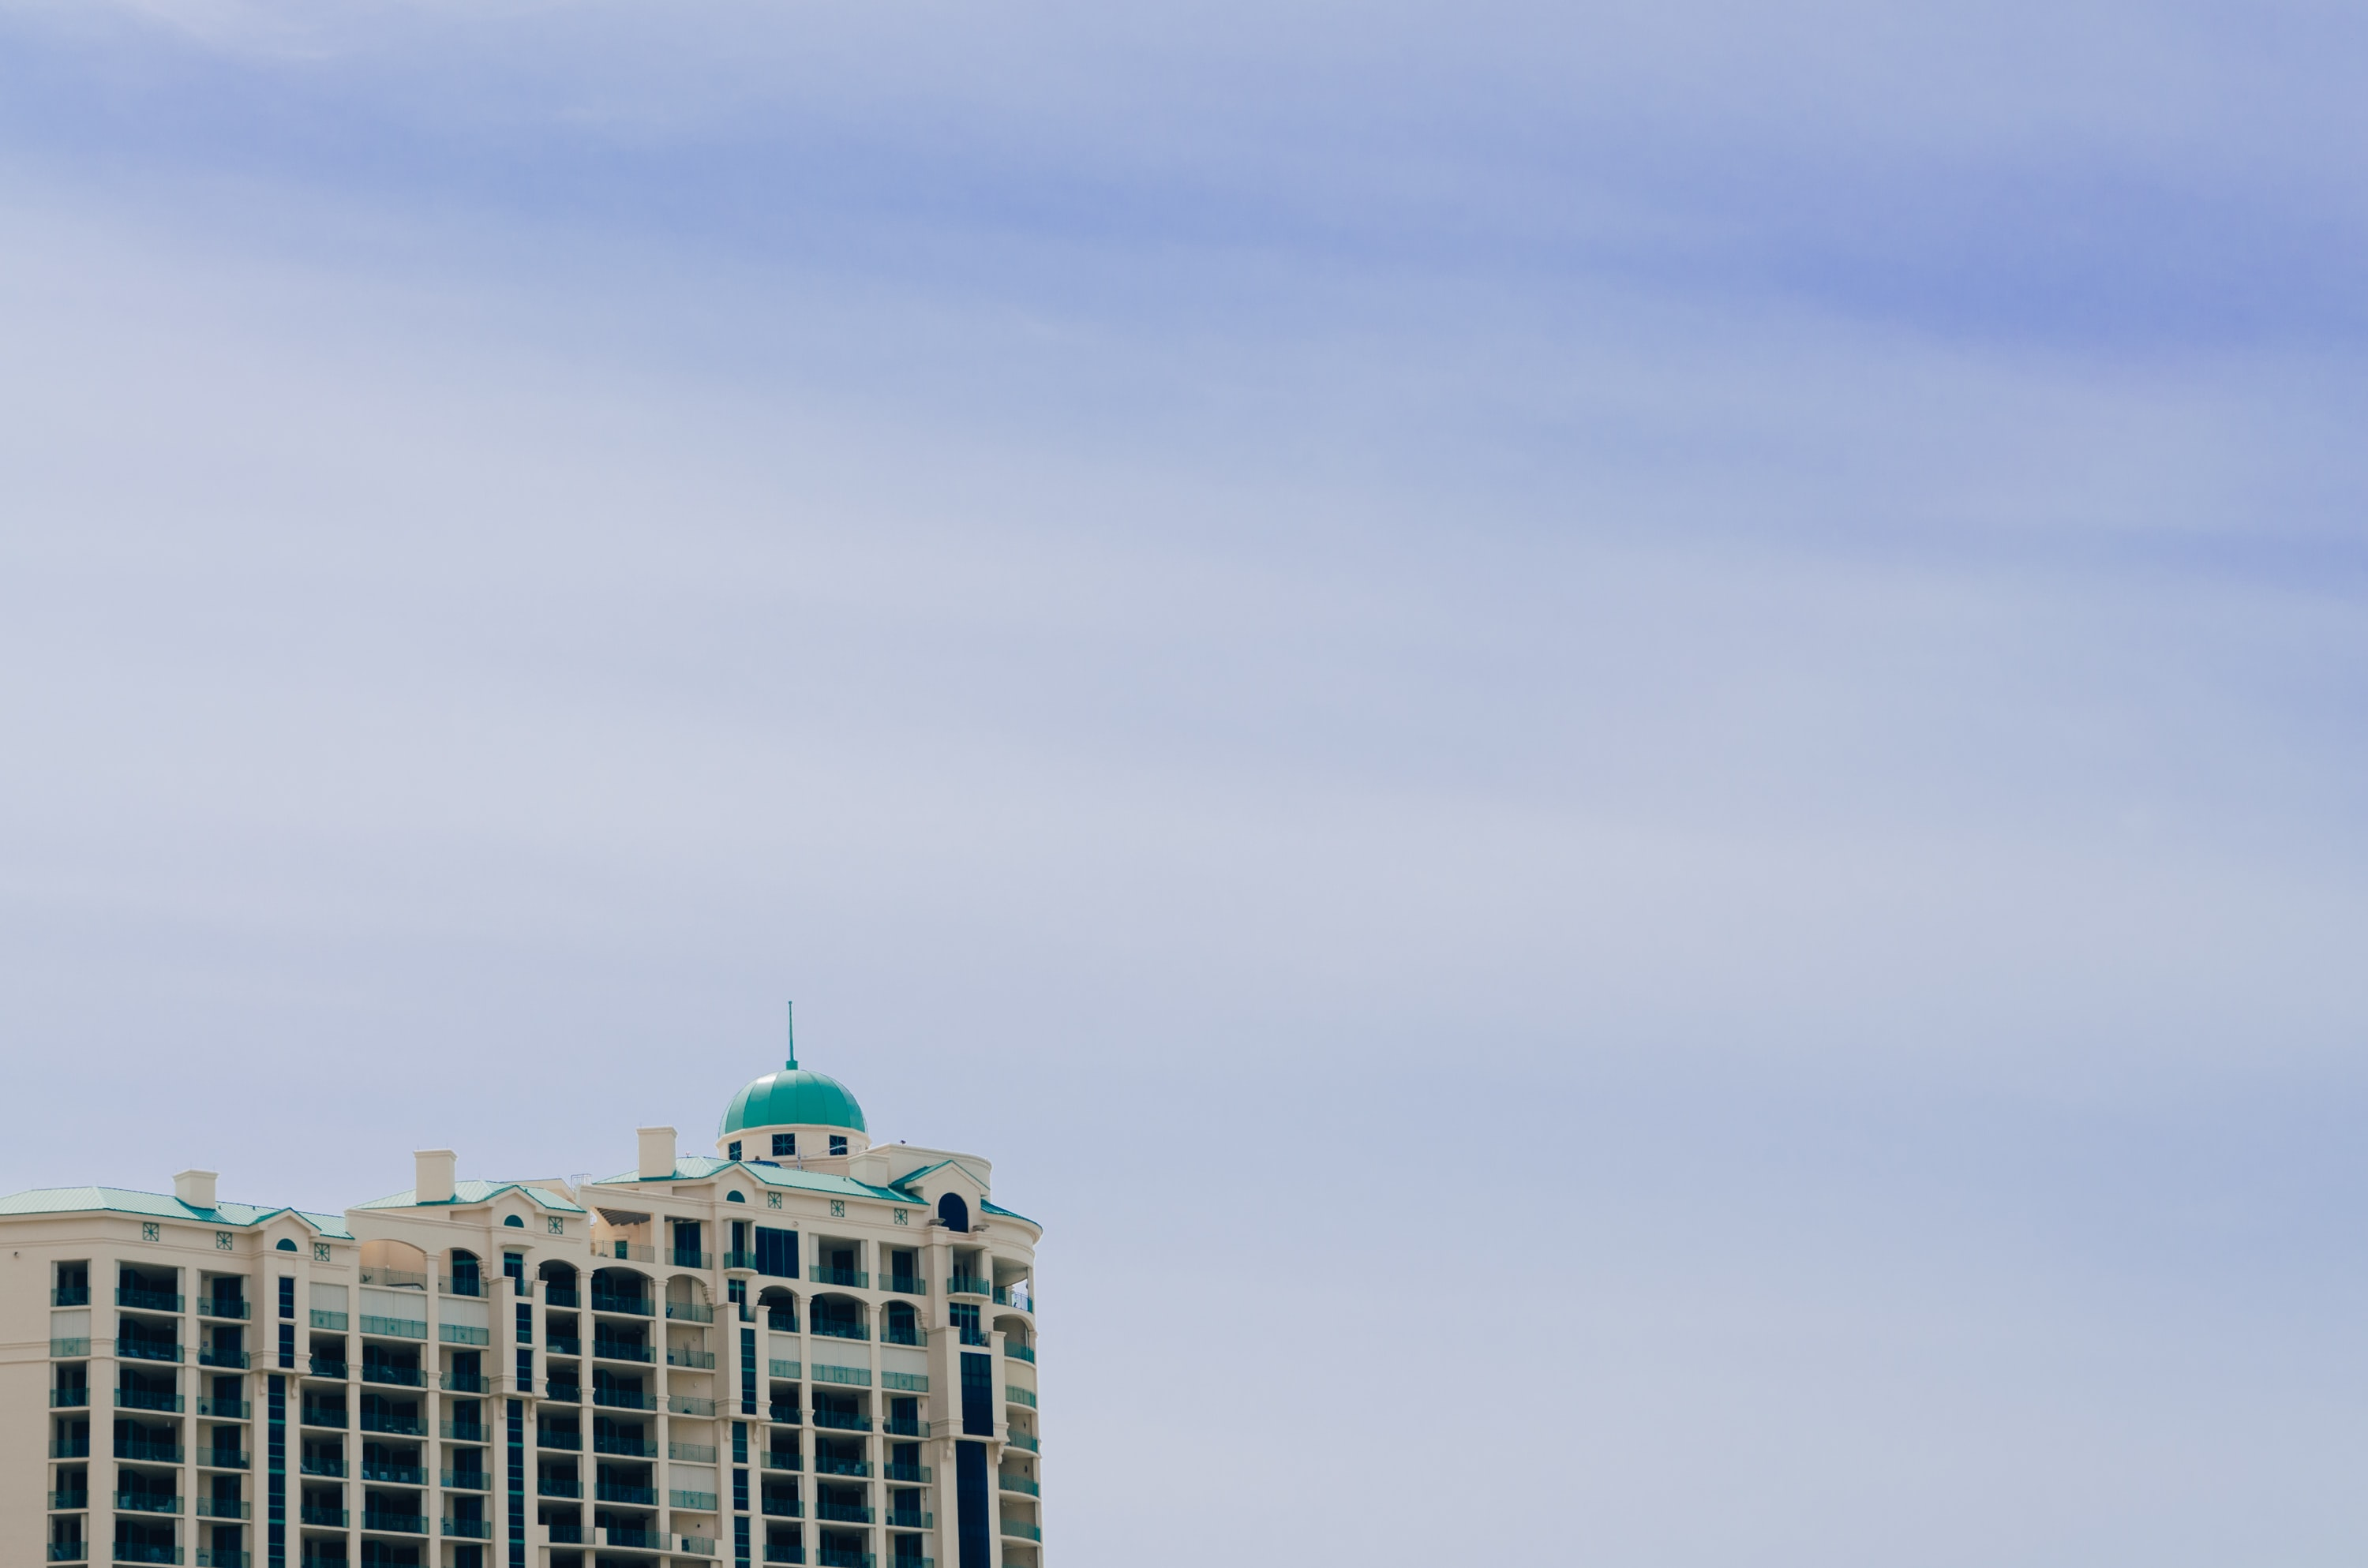 landscape photography of high rise building